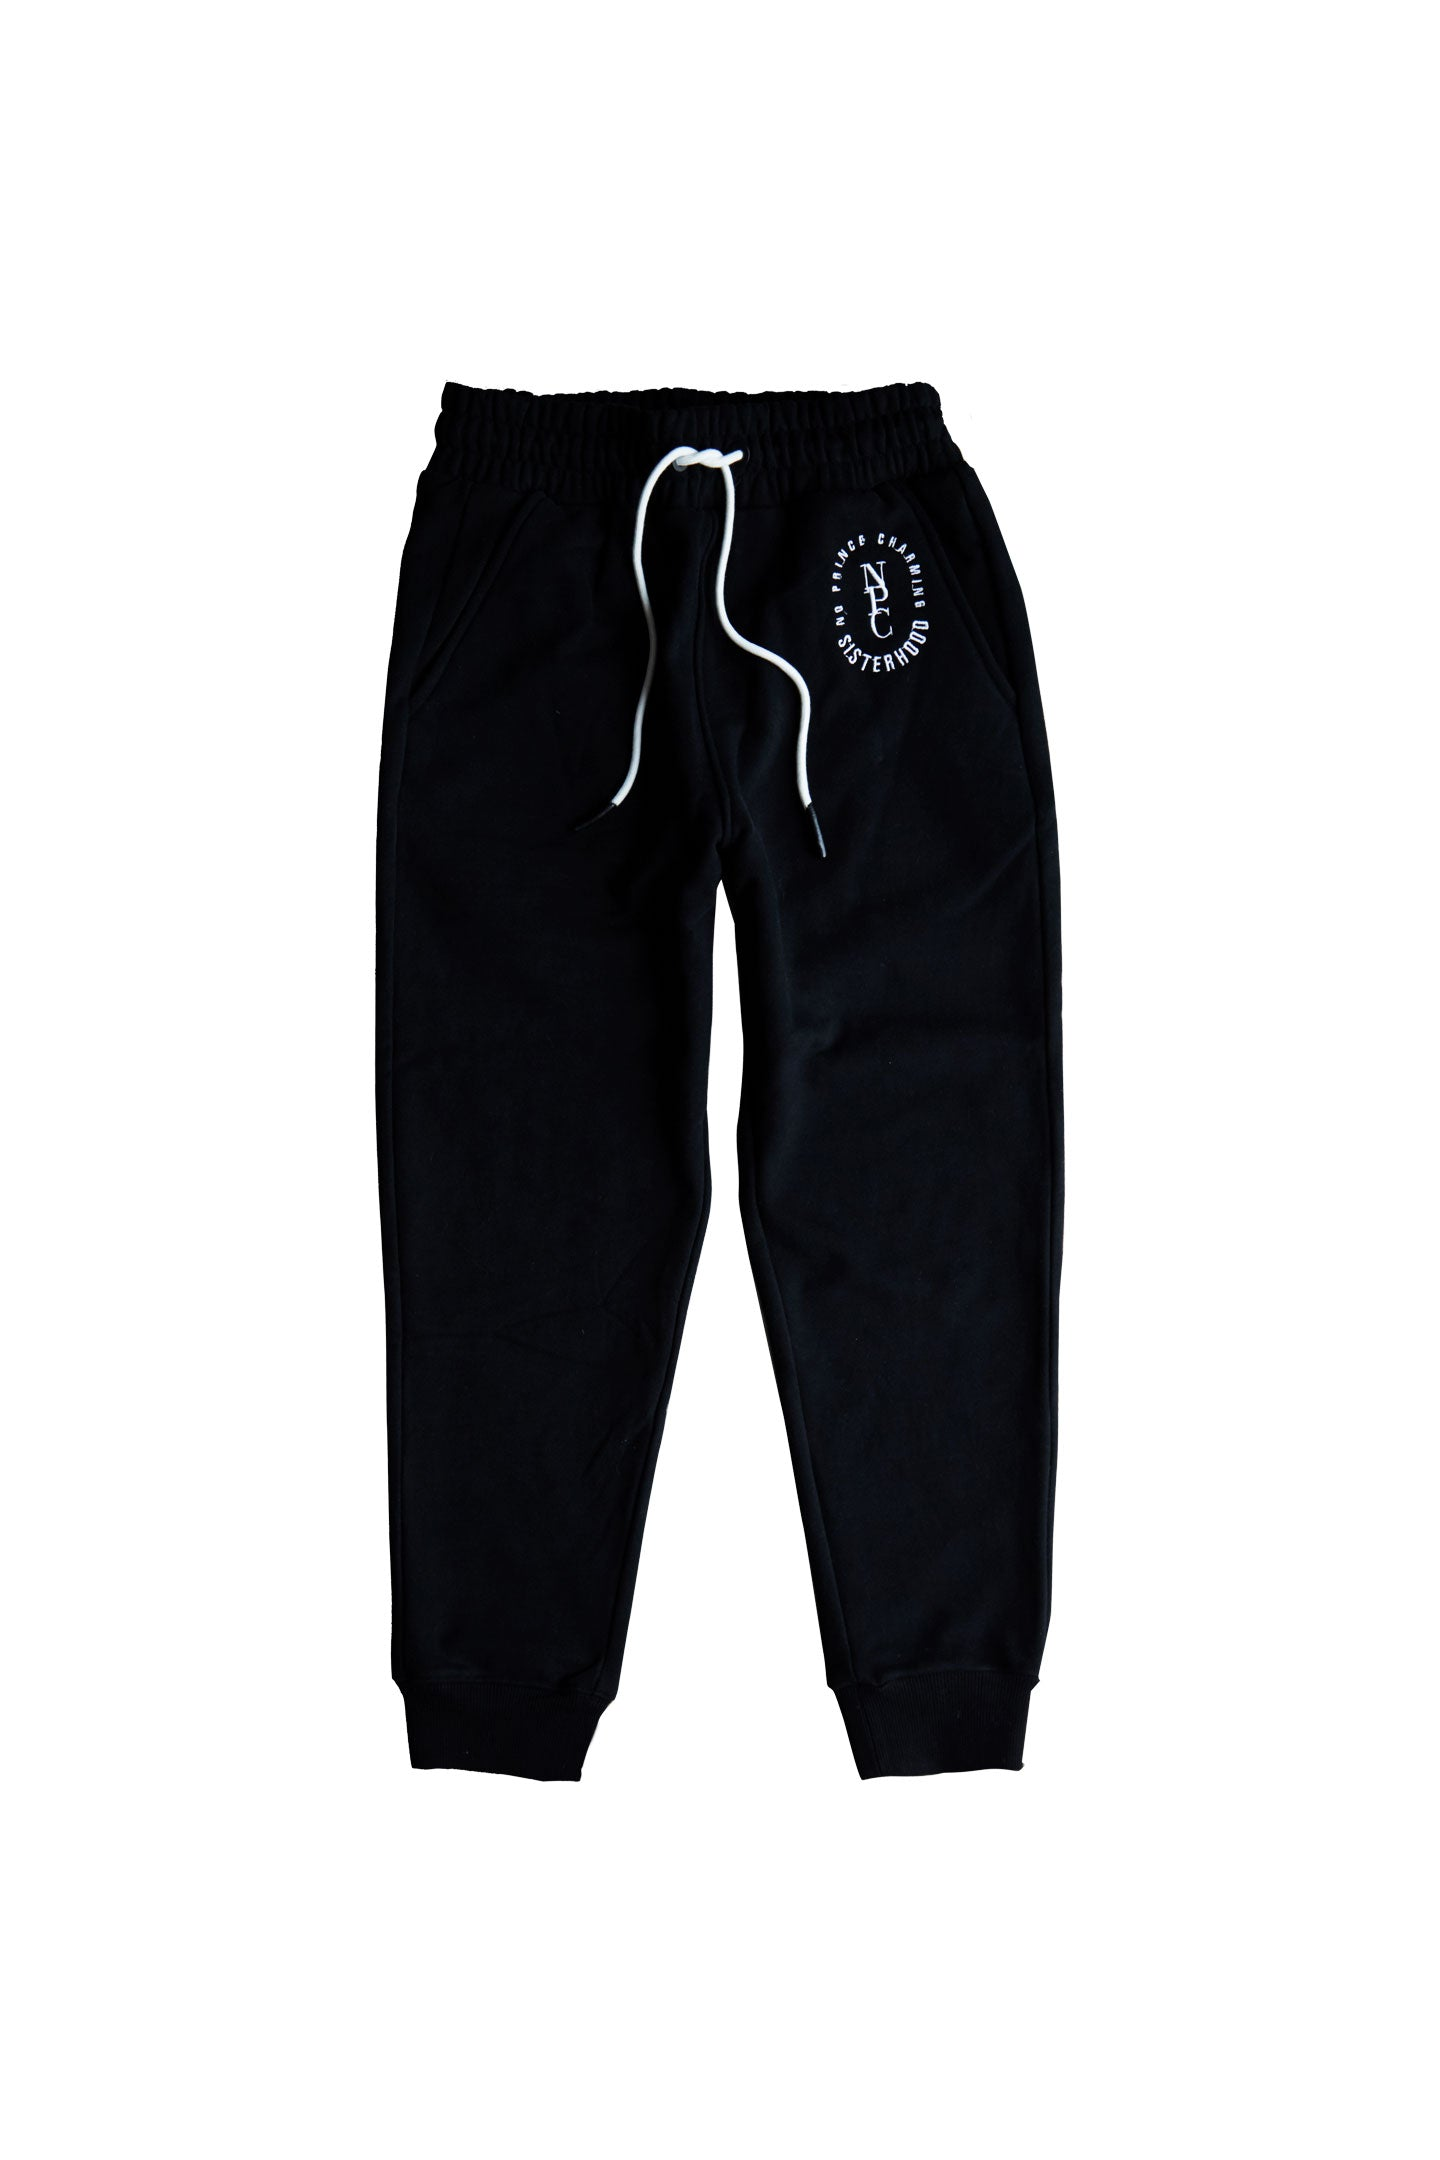 COTTON JOGGERS - BLACK